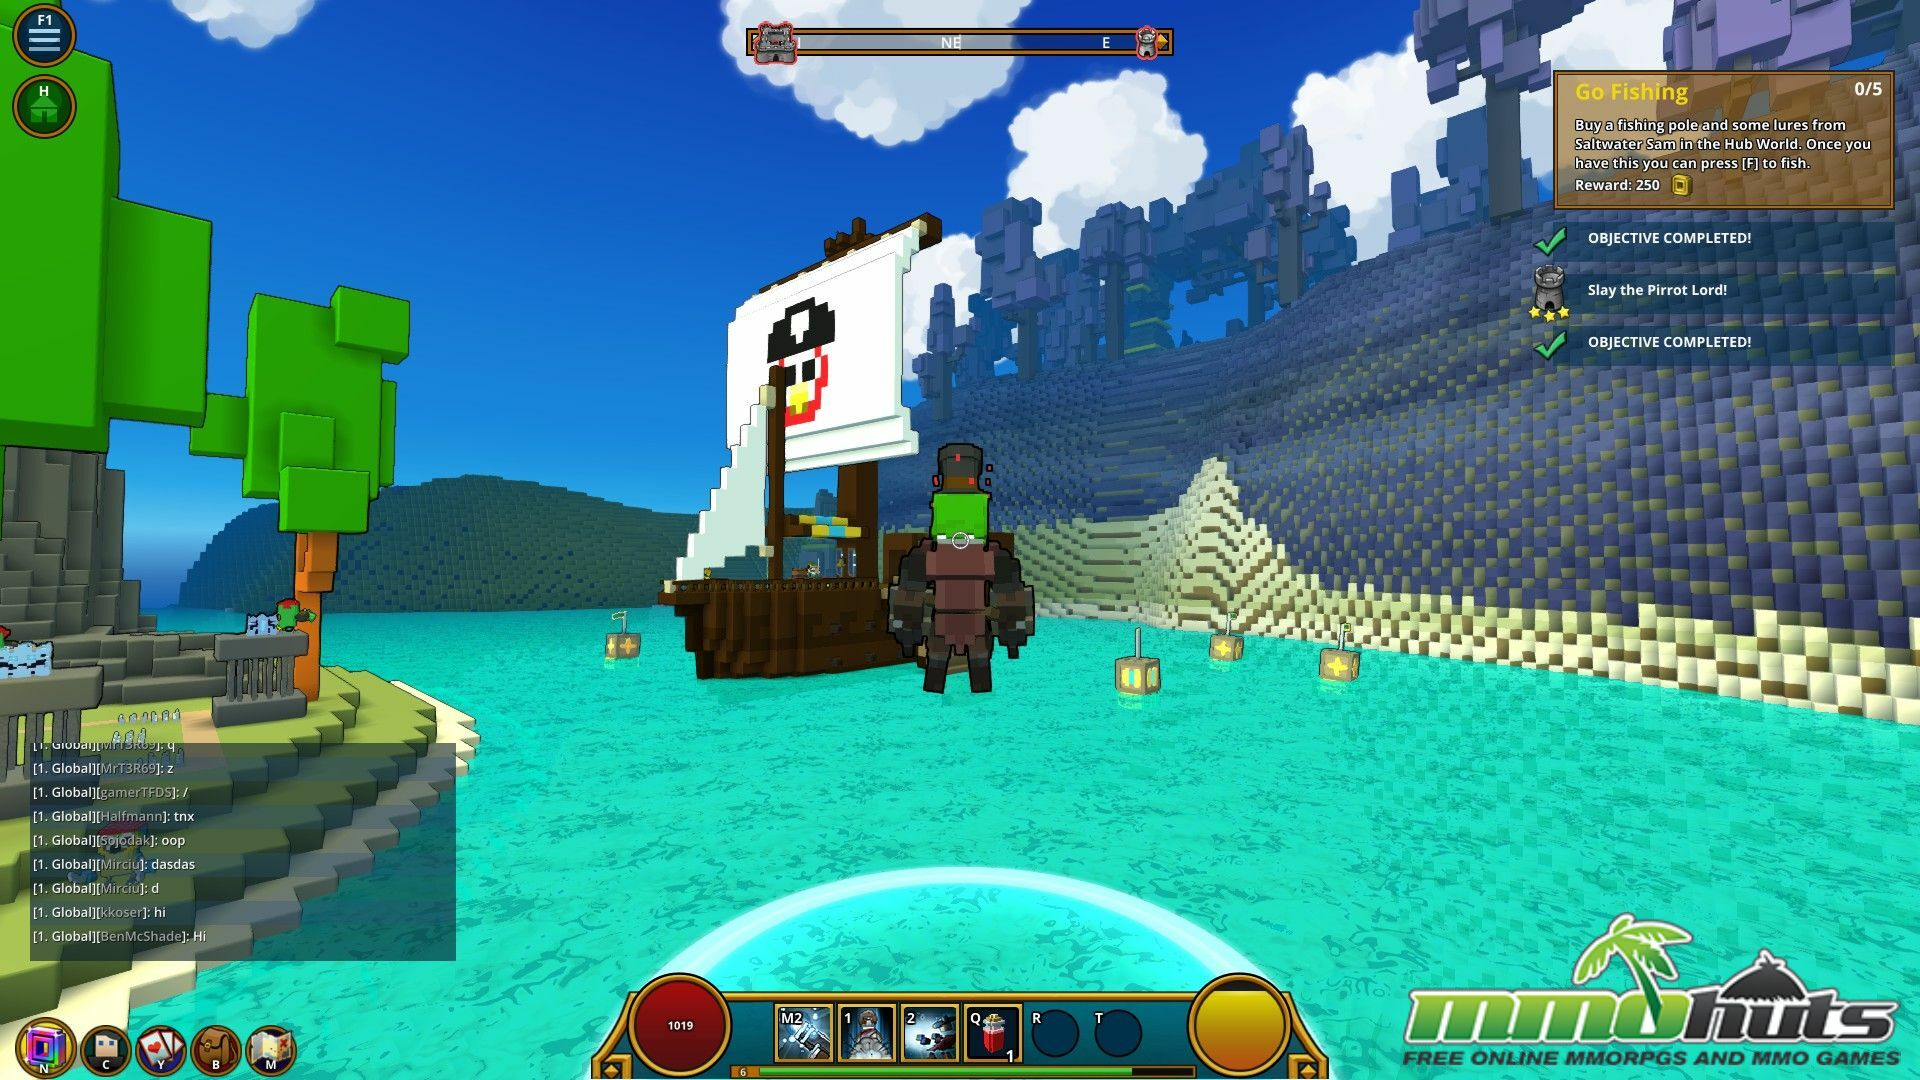 Trove Full Review